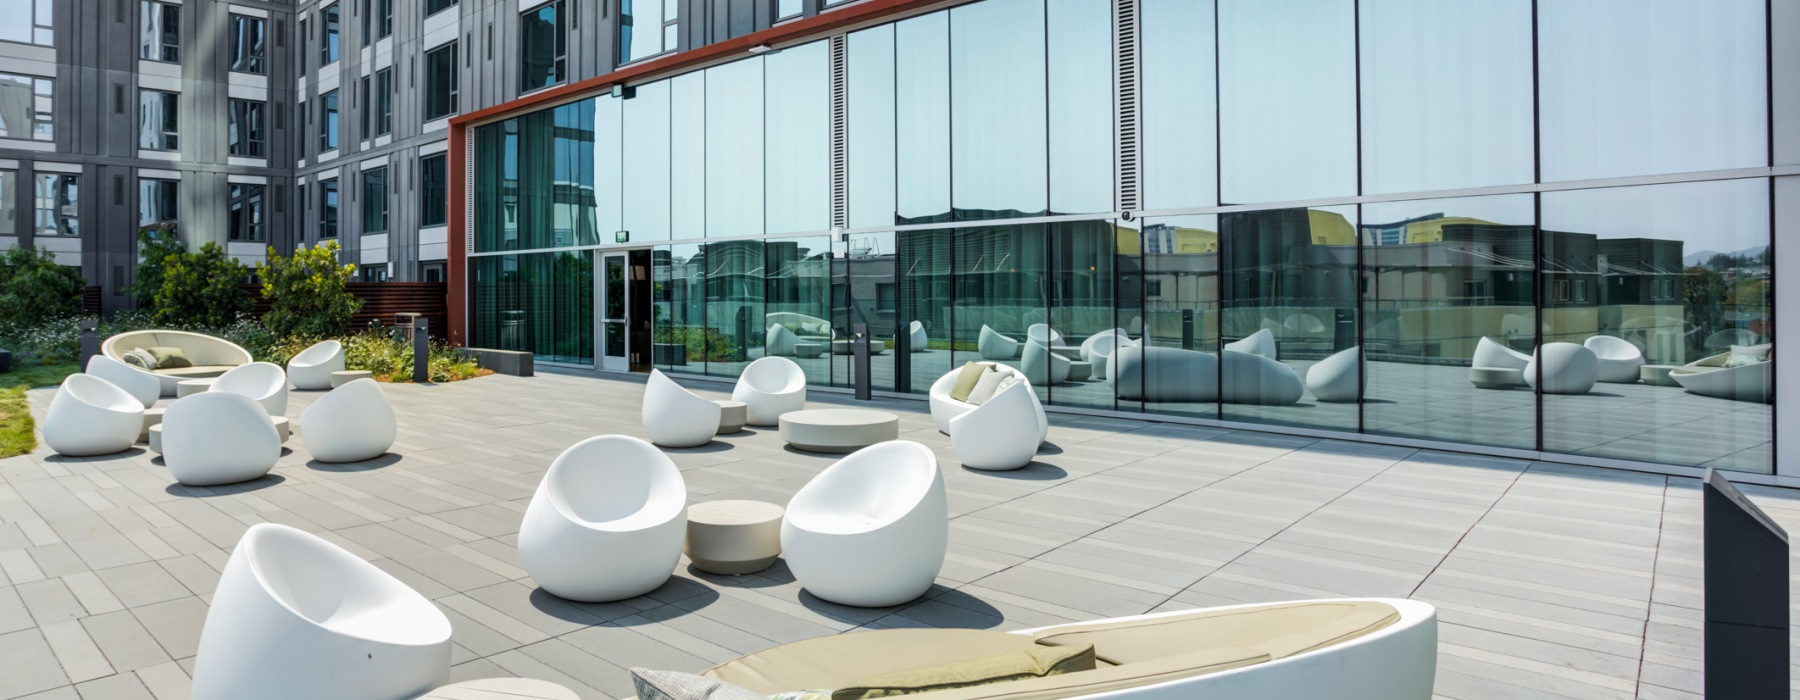 white modern-styled seating with cement floors and landscaping.